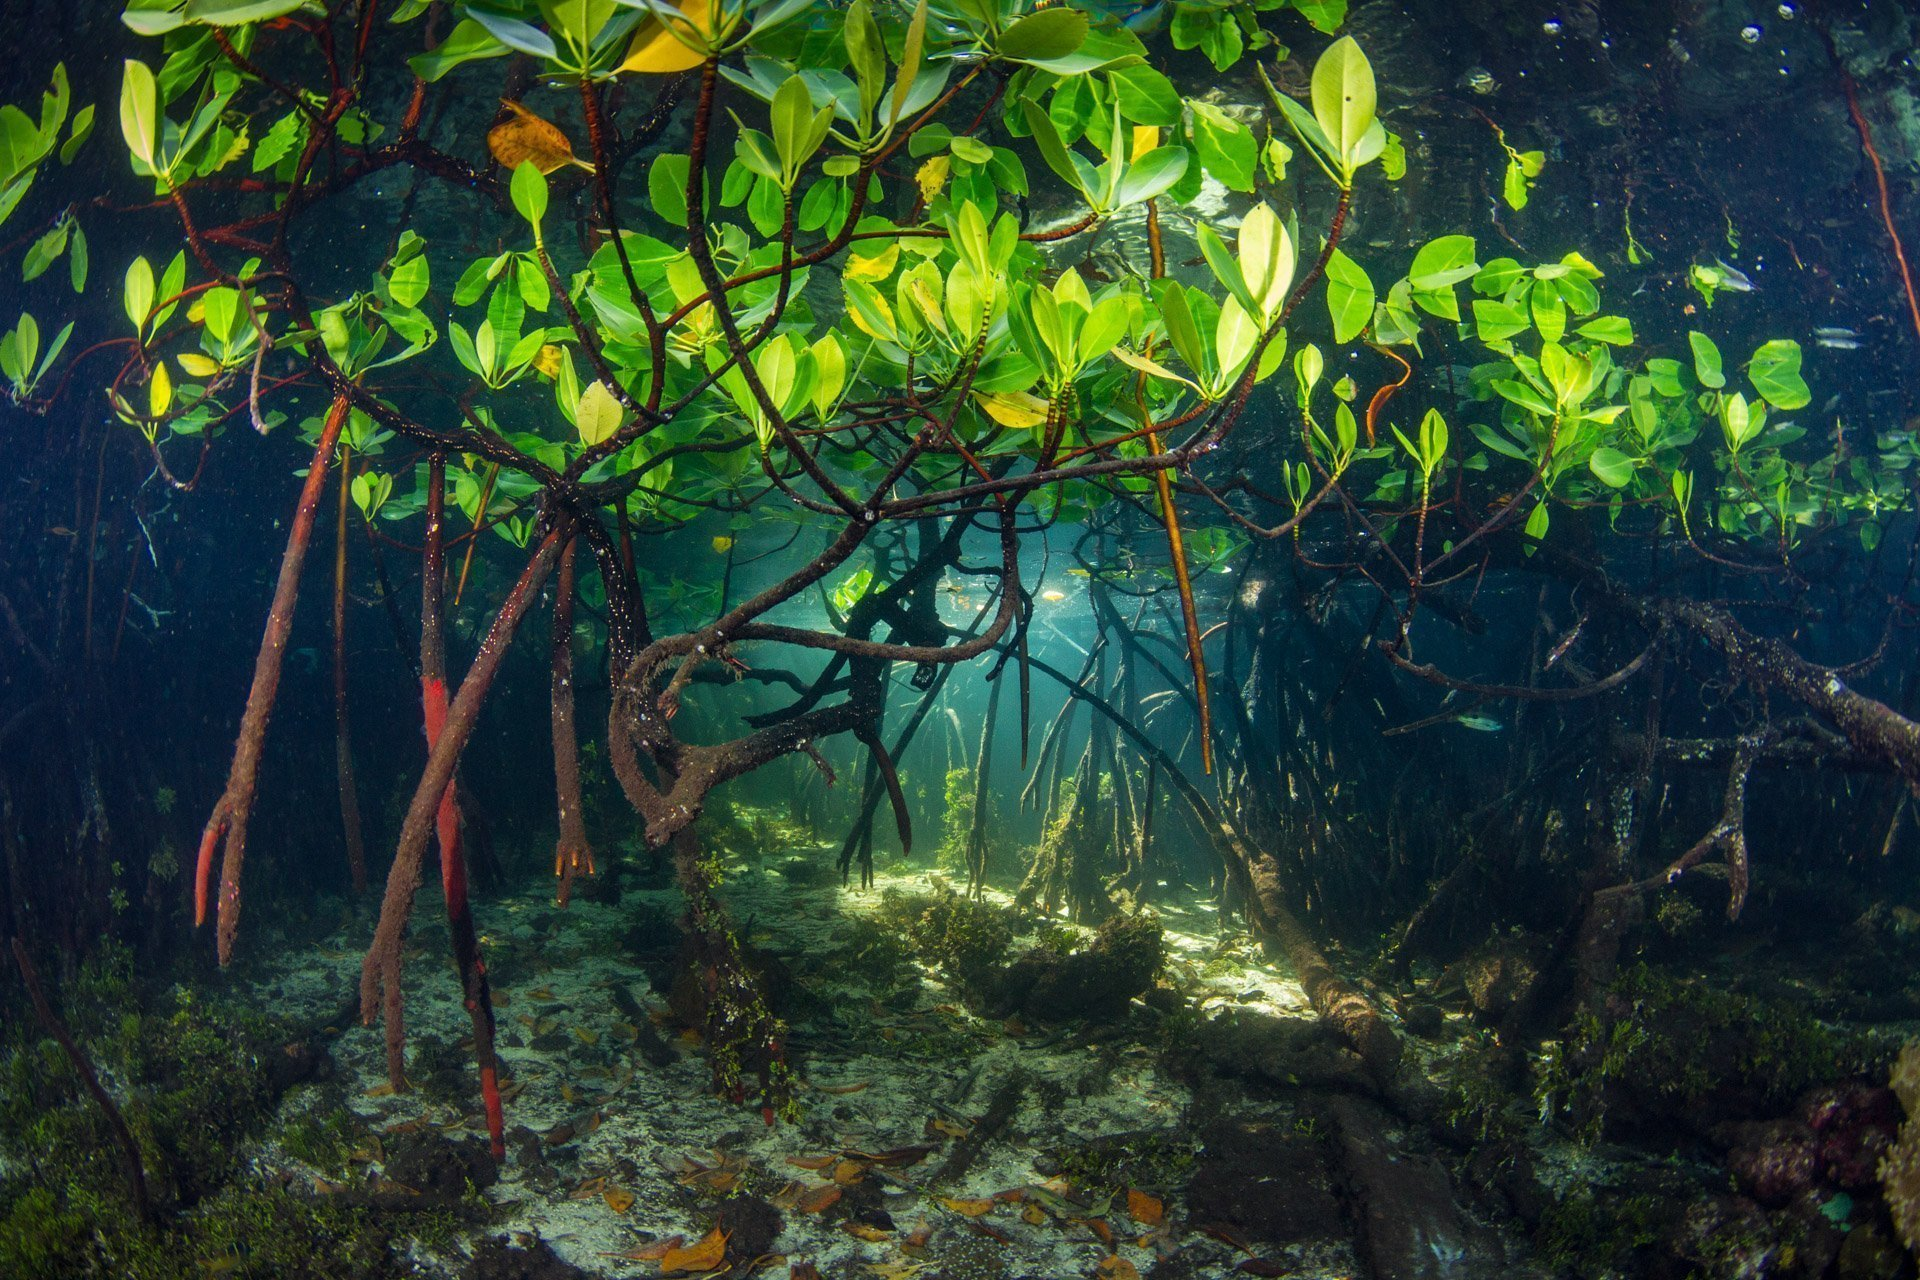 Mangroves viewed from underwater